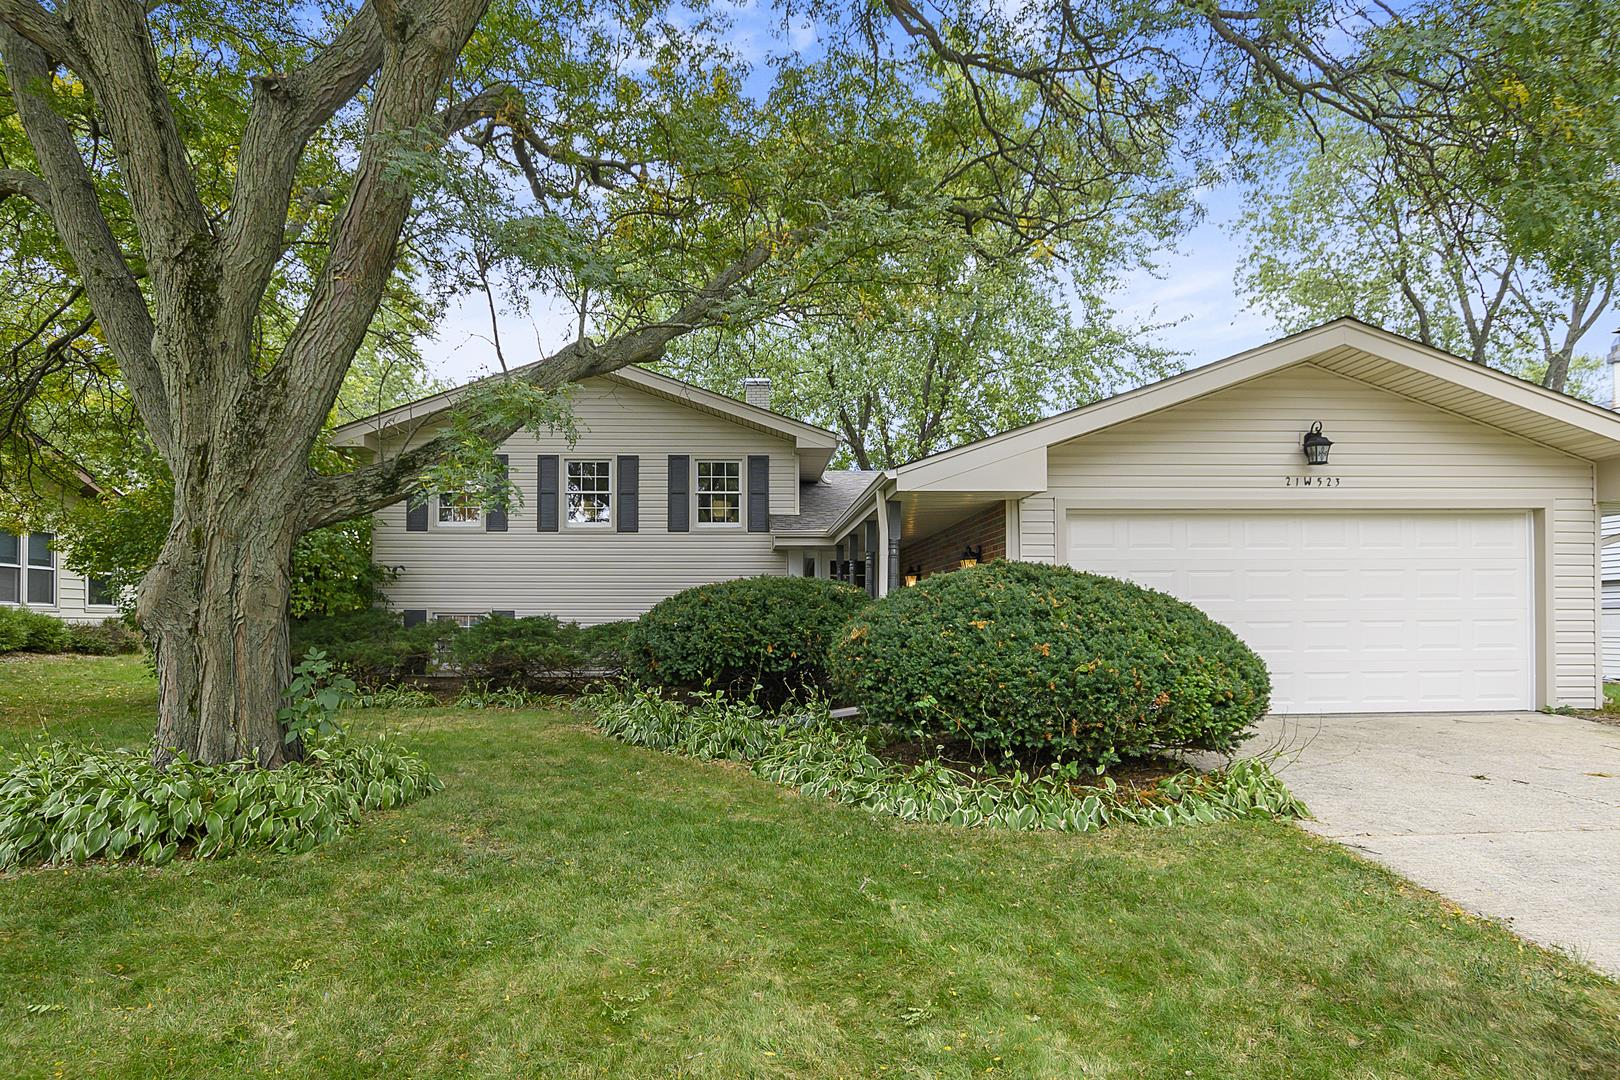 21W523 Monticello Road, Glen Ellyn, IL 60137 - #: 10892326